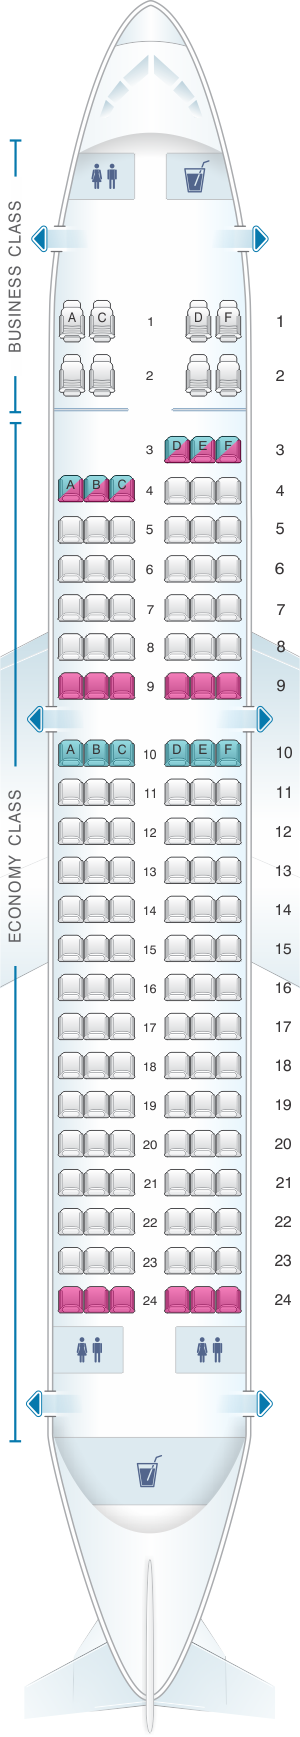 Seat map for TAP Air Portugal Airbus A319